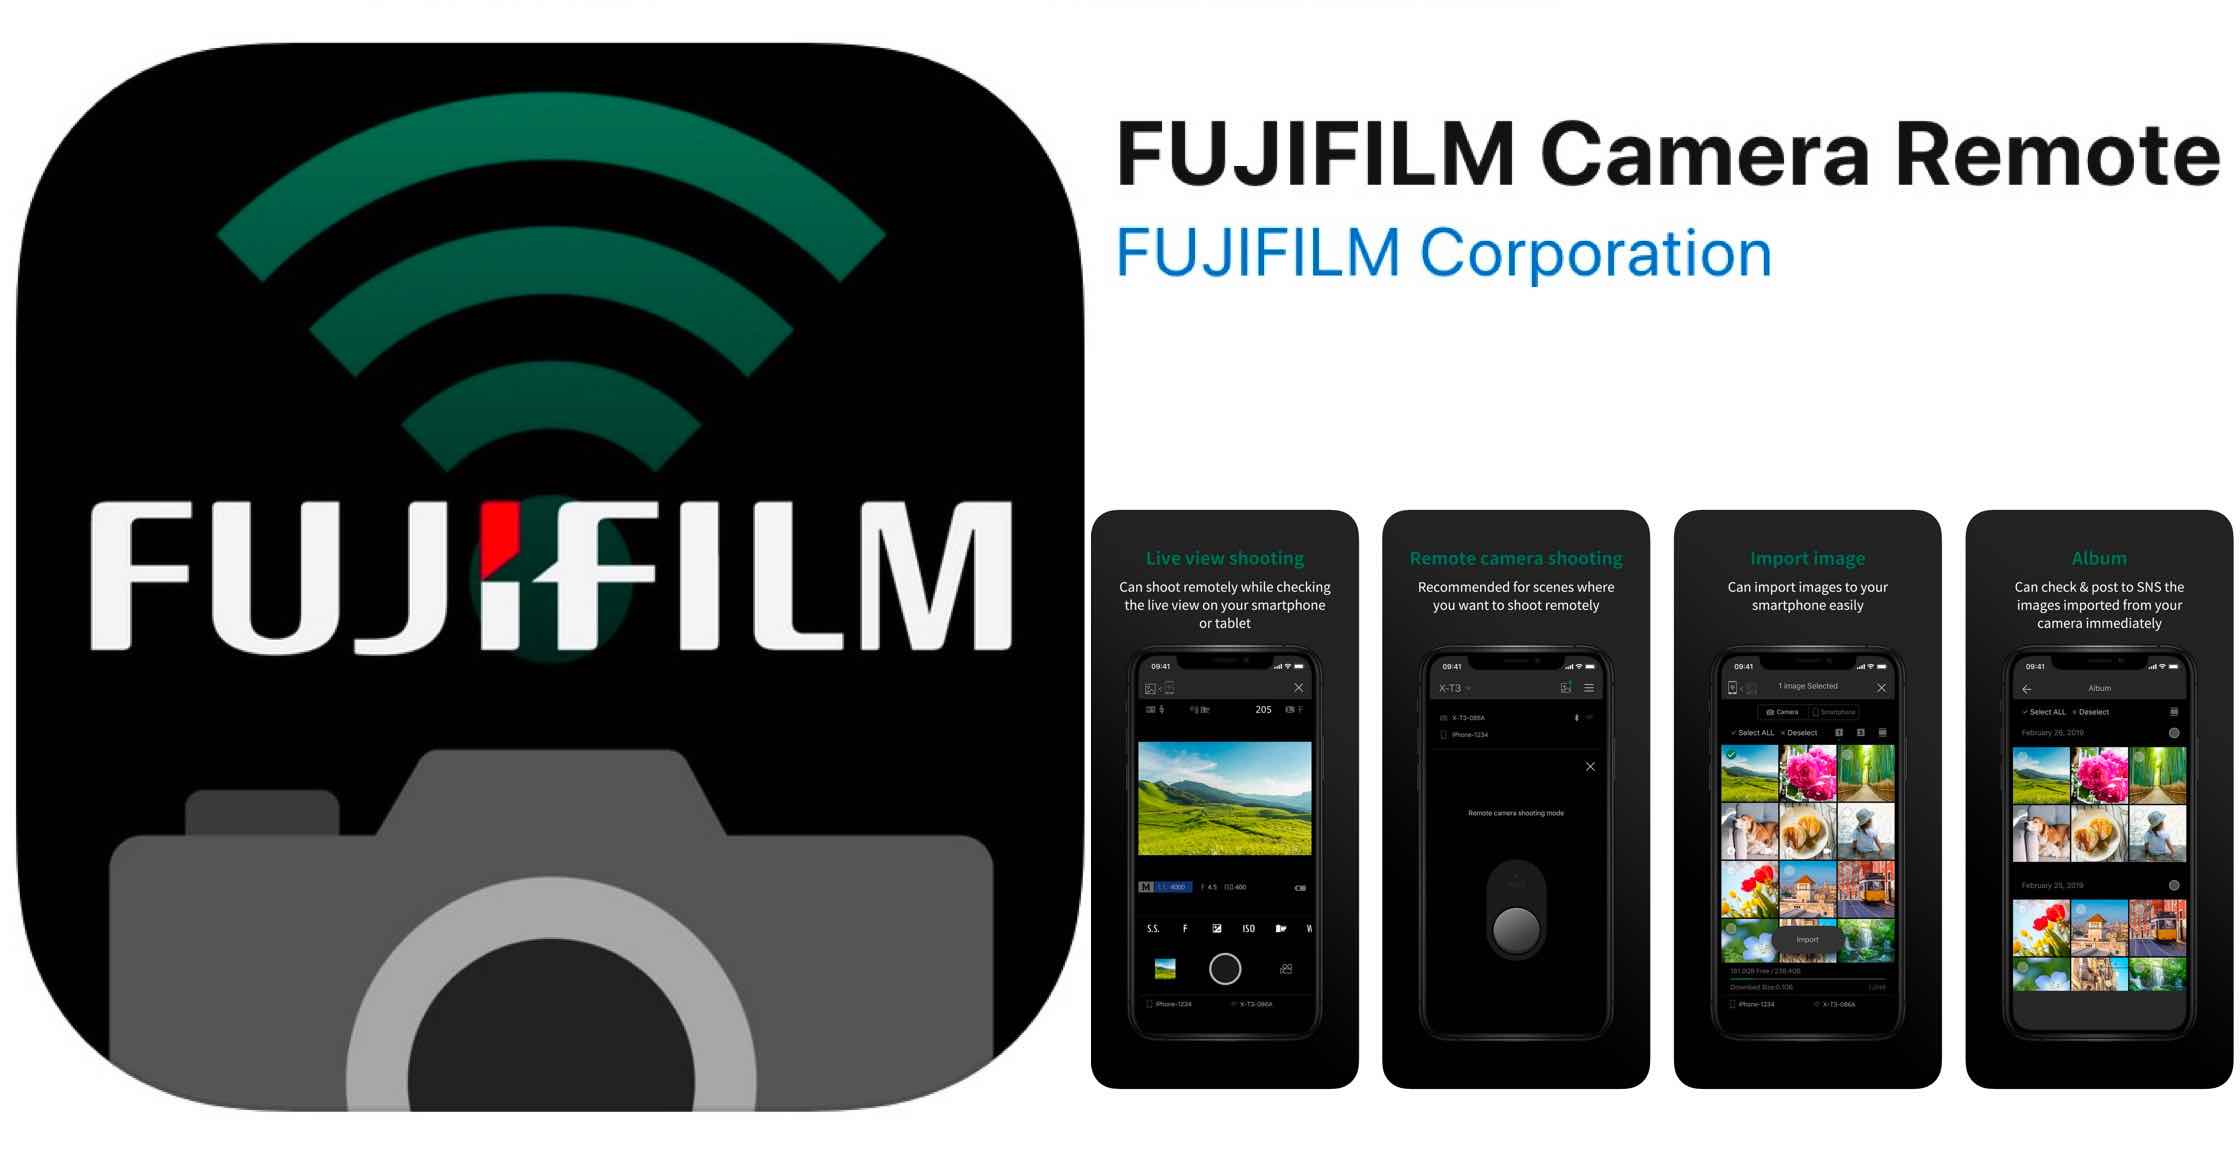 Fujifilm Camera Remote 4 0 1 Update Released and Why it is